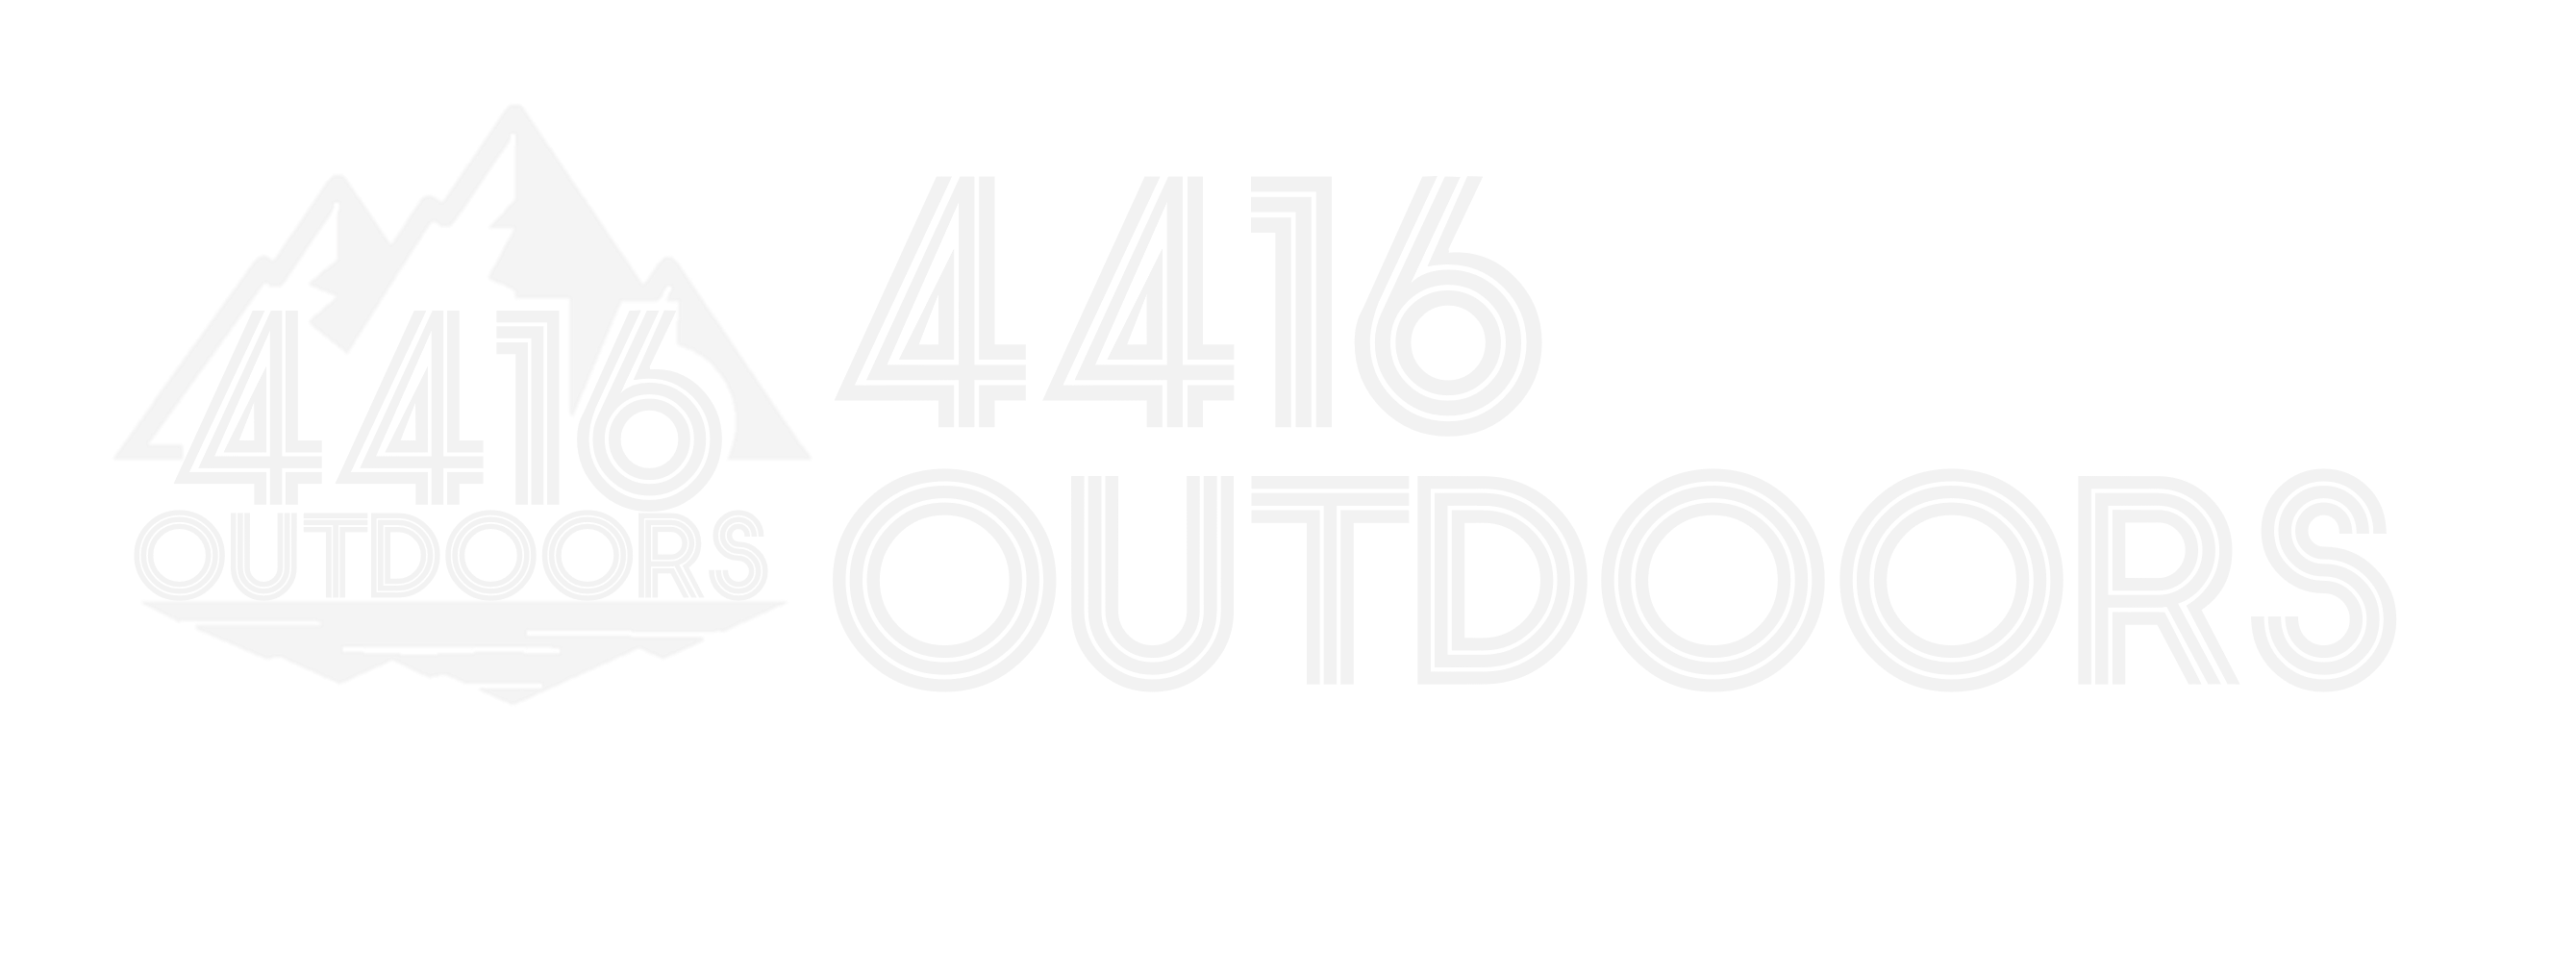 4416OUTDOORS